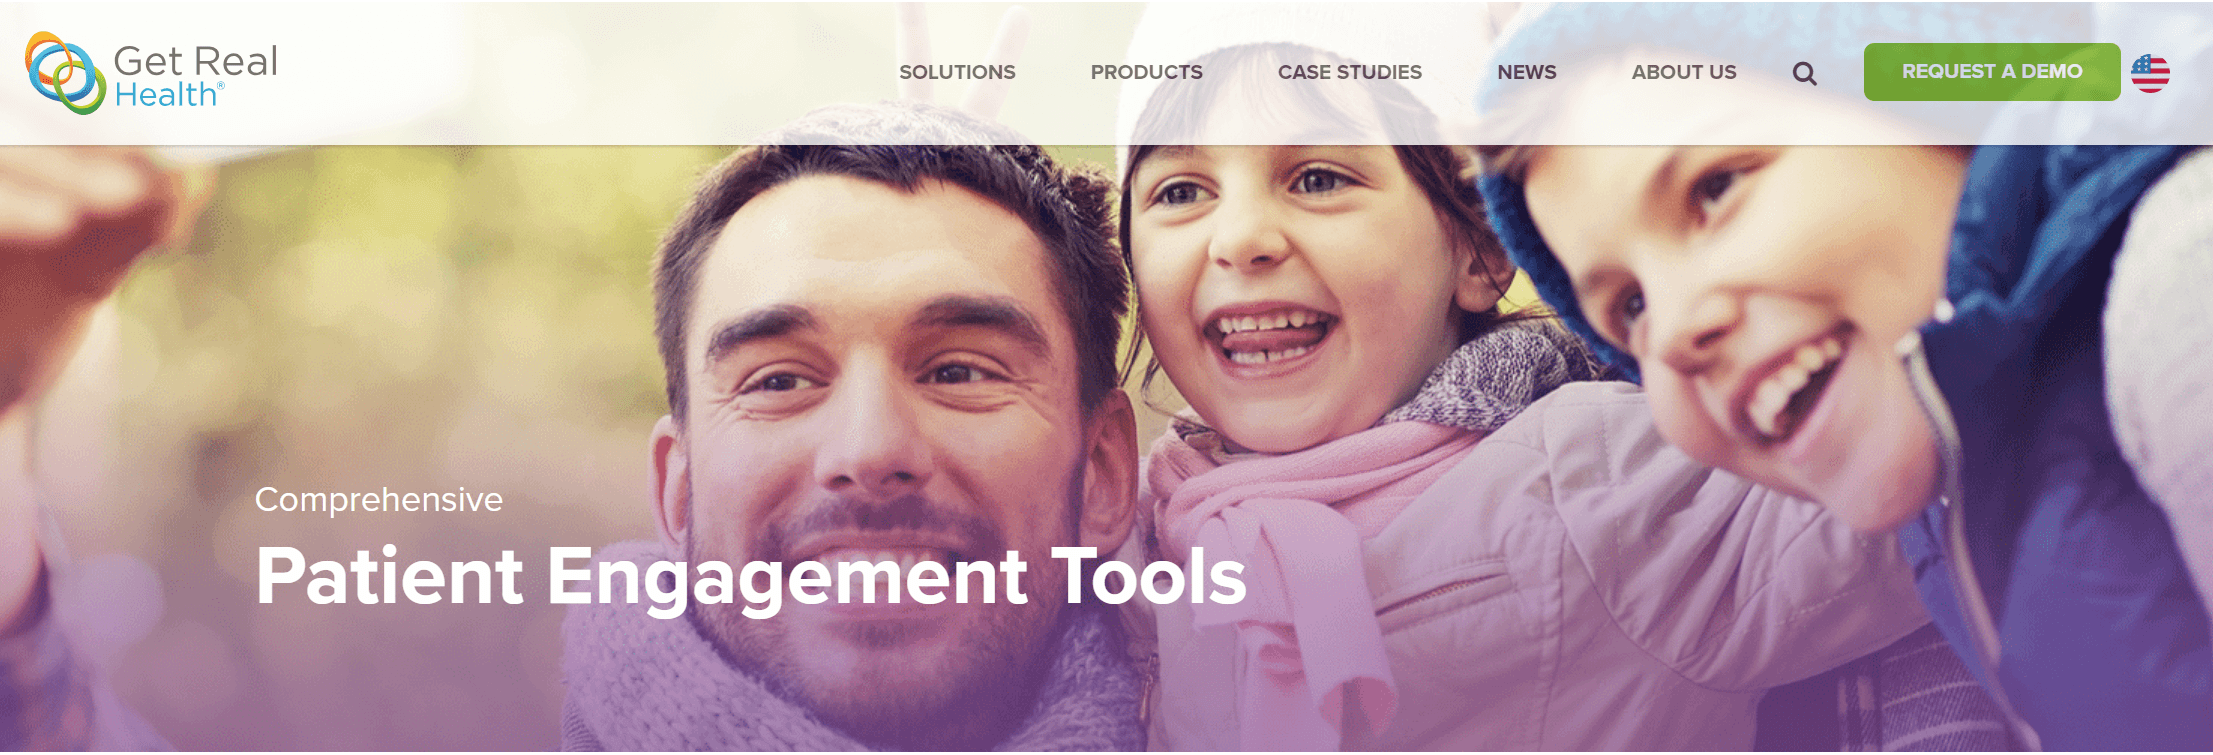 CPSI to Acquire Patient Engagement Company Get Real Health for $11M